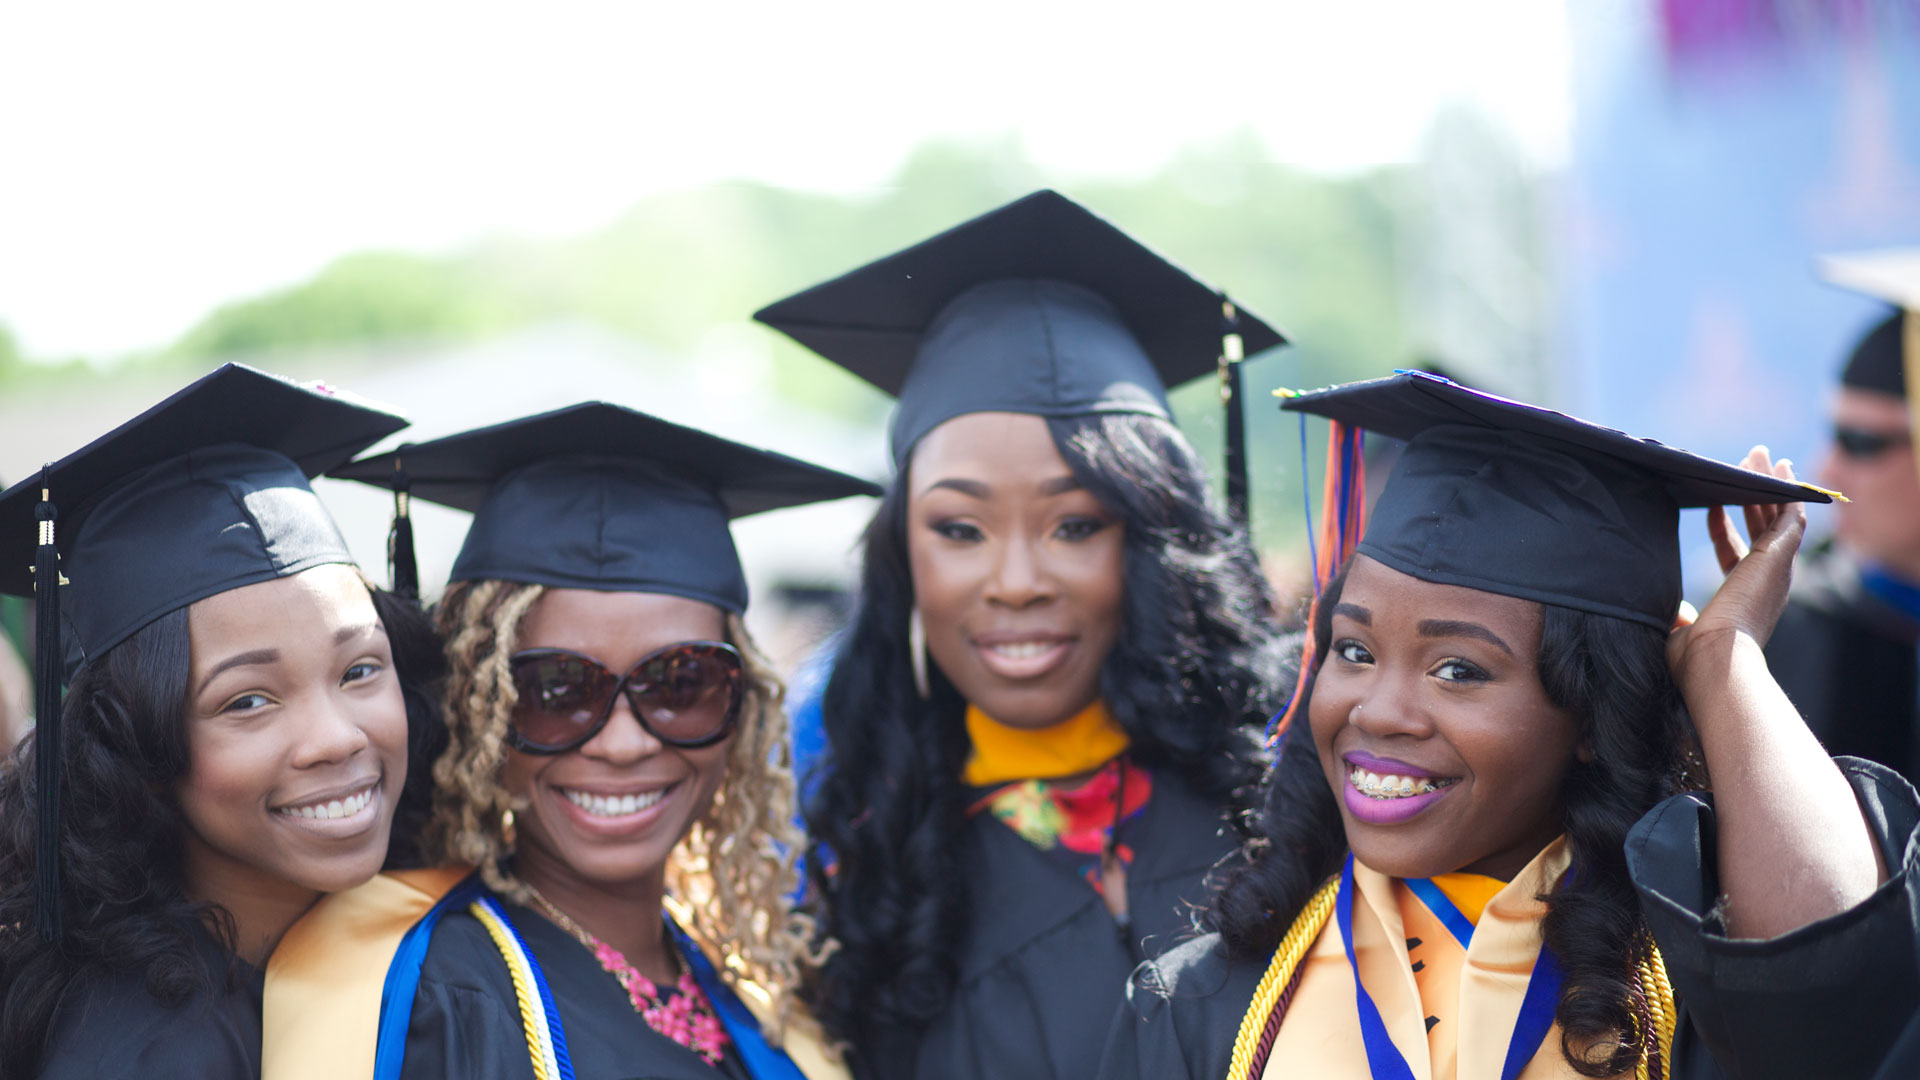 Recent graduates of Morgan State University, Maryland.